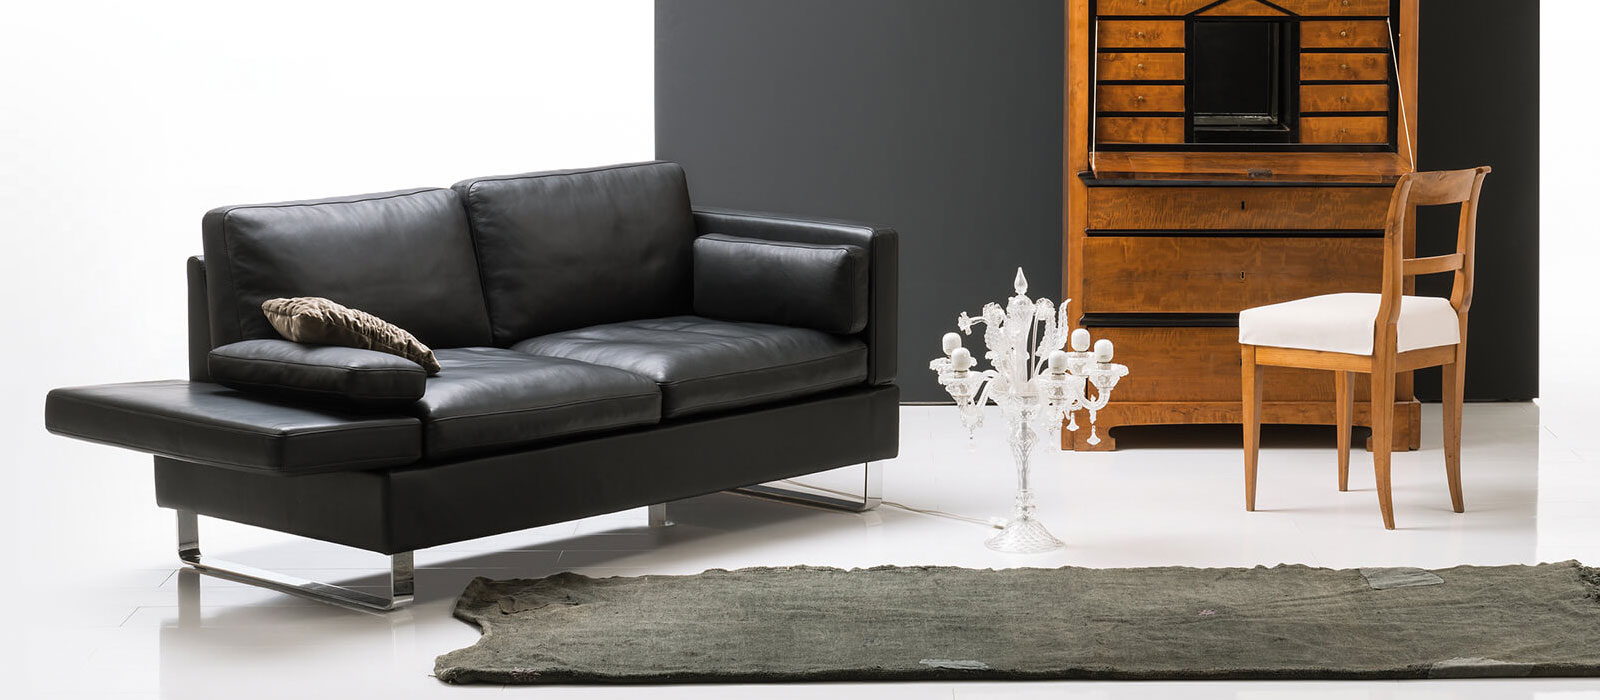 alba schlafsofa von br hl sofabed. Black Bedroom Furniture Sets. Home Design Ideas